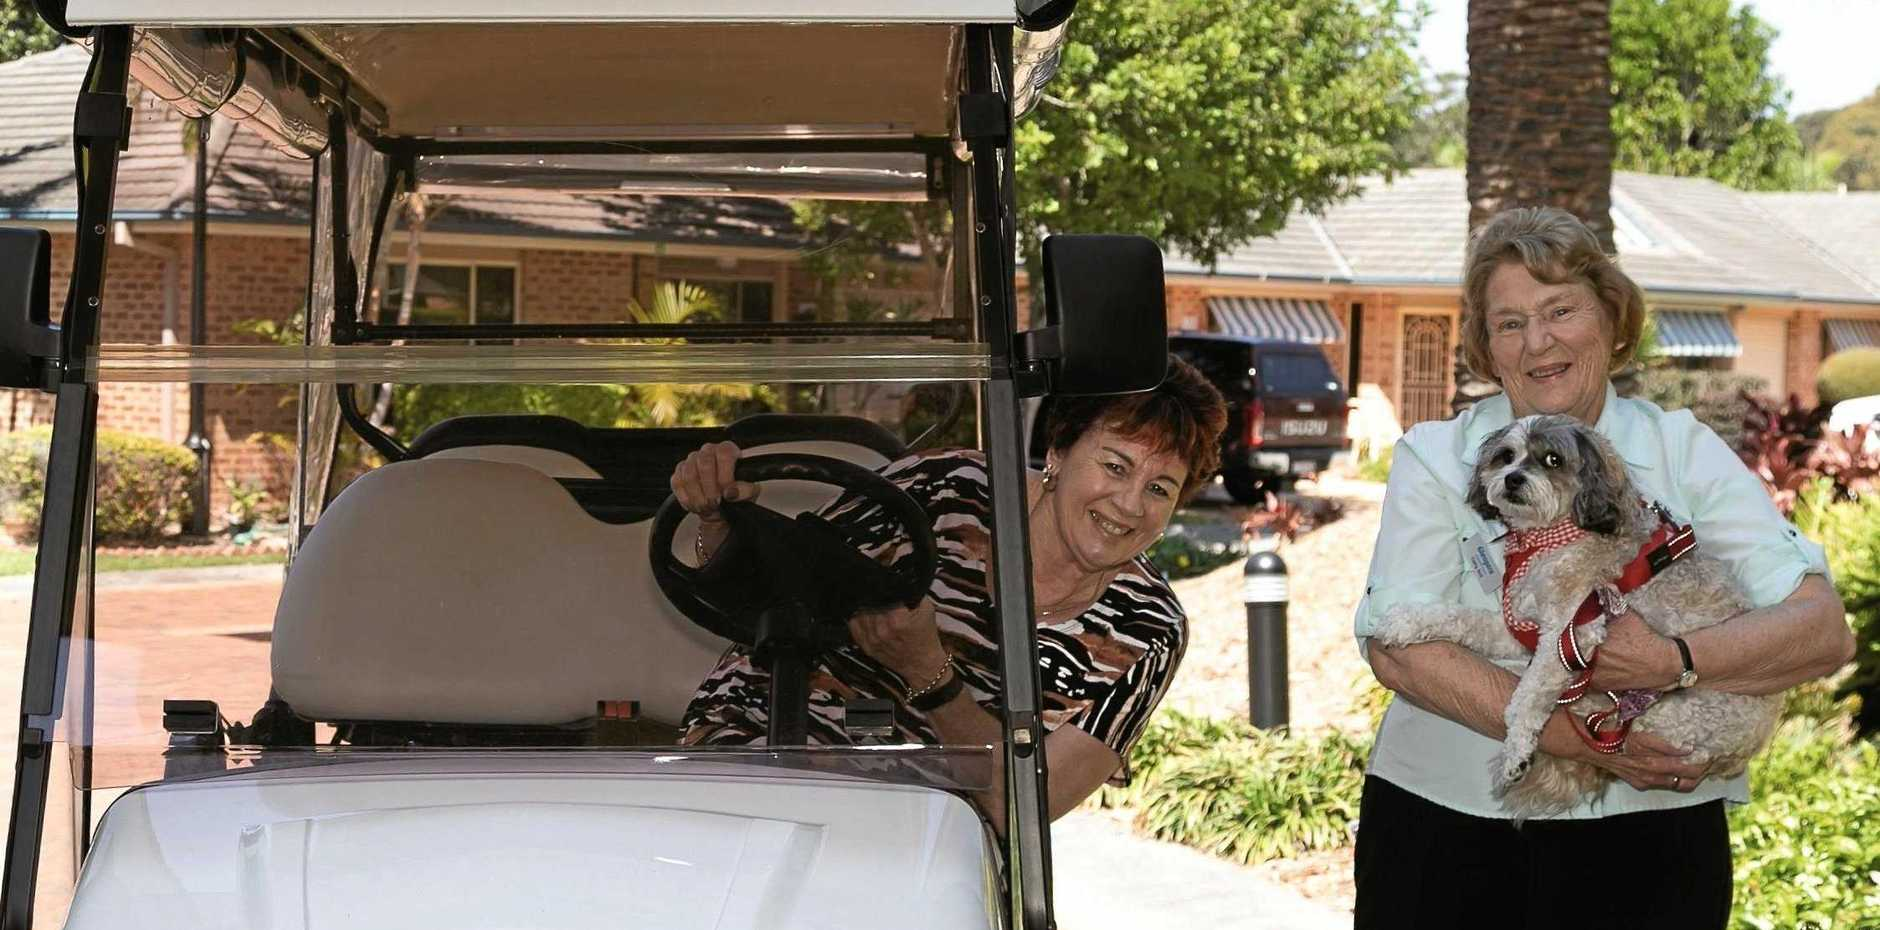 NEIGHBOUR-TO-NEIGHBOUR: Cathy Aird (right) with Rosie the dog and Brenda Carkeet at the wheel of the golf buggy transport, part of the service offered by 20 volunteers to make life better for fellow residents.